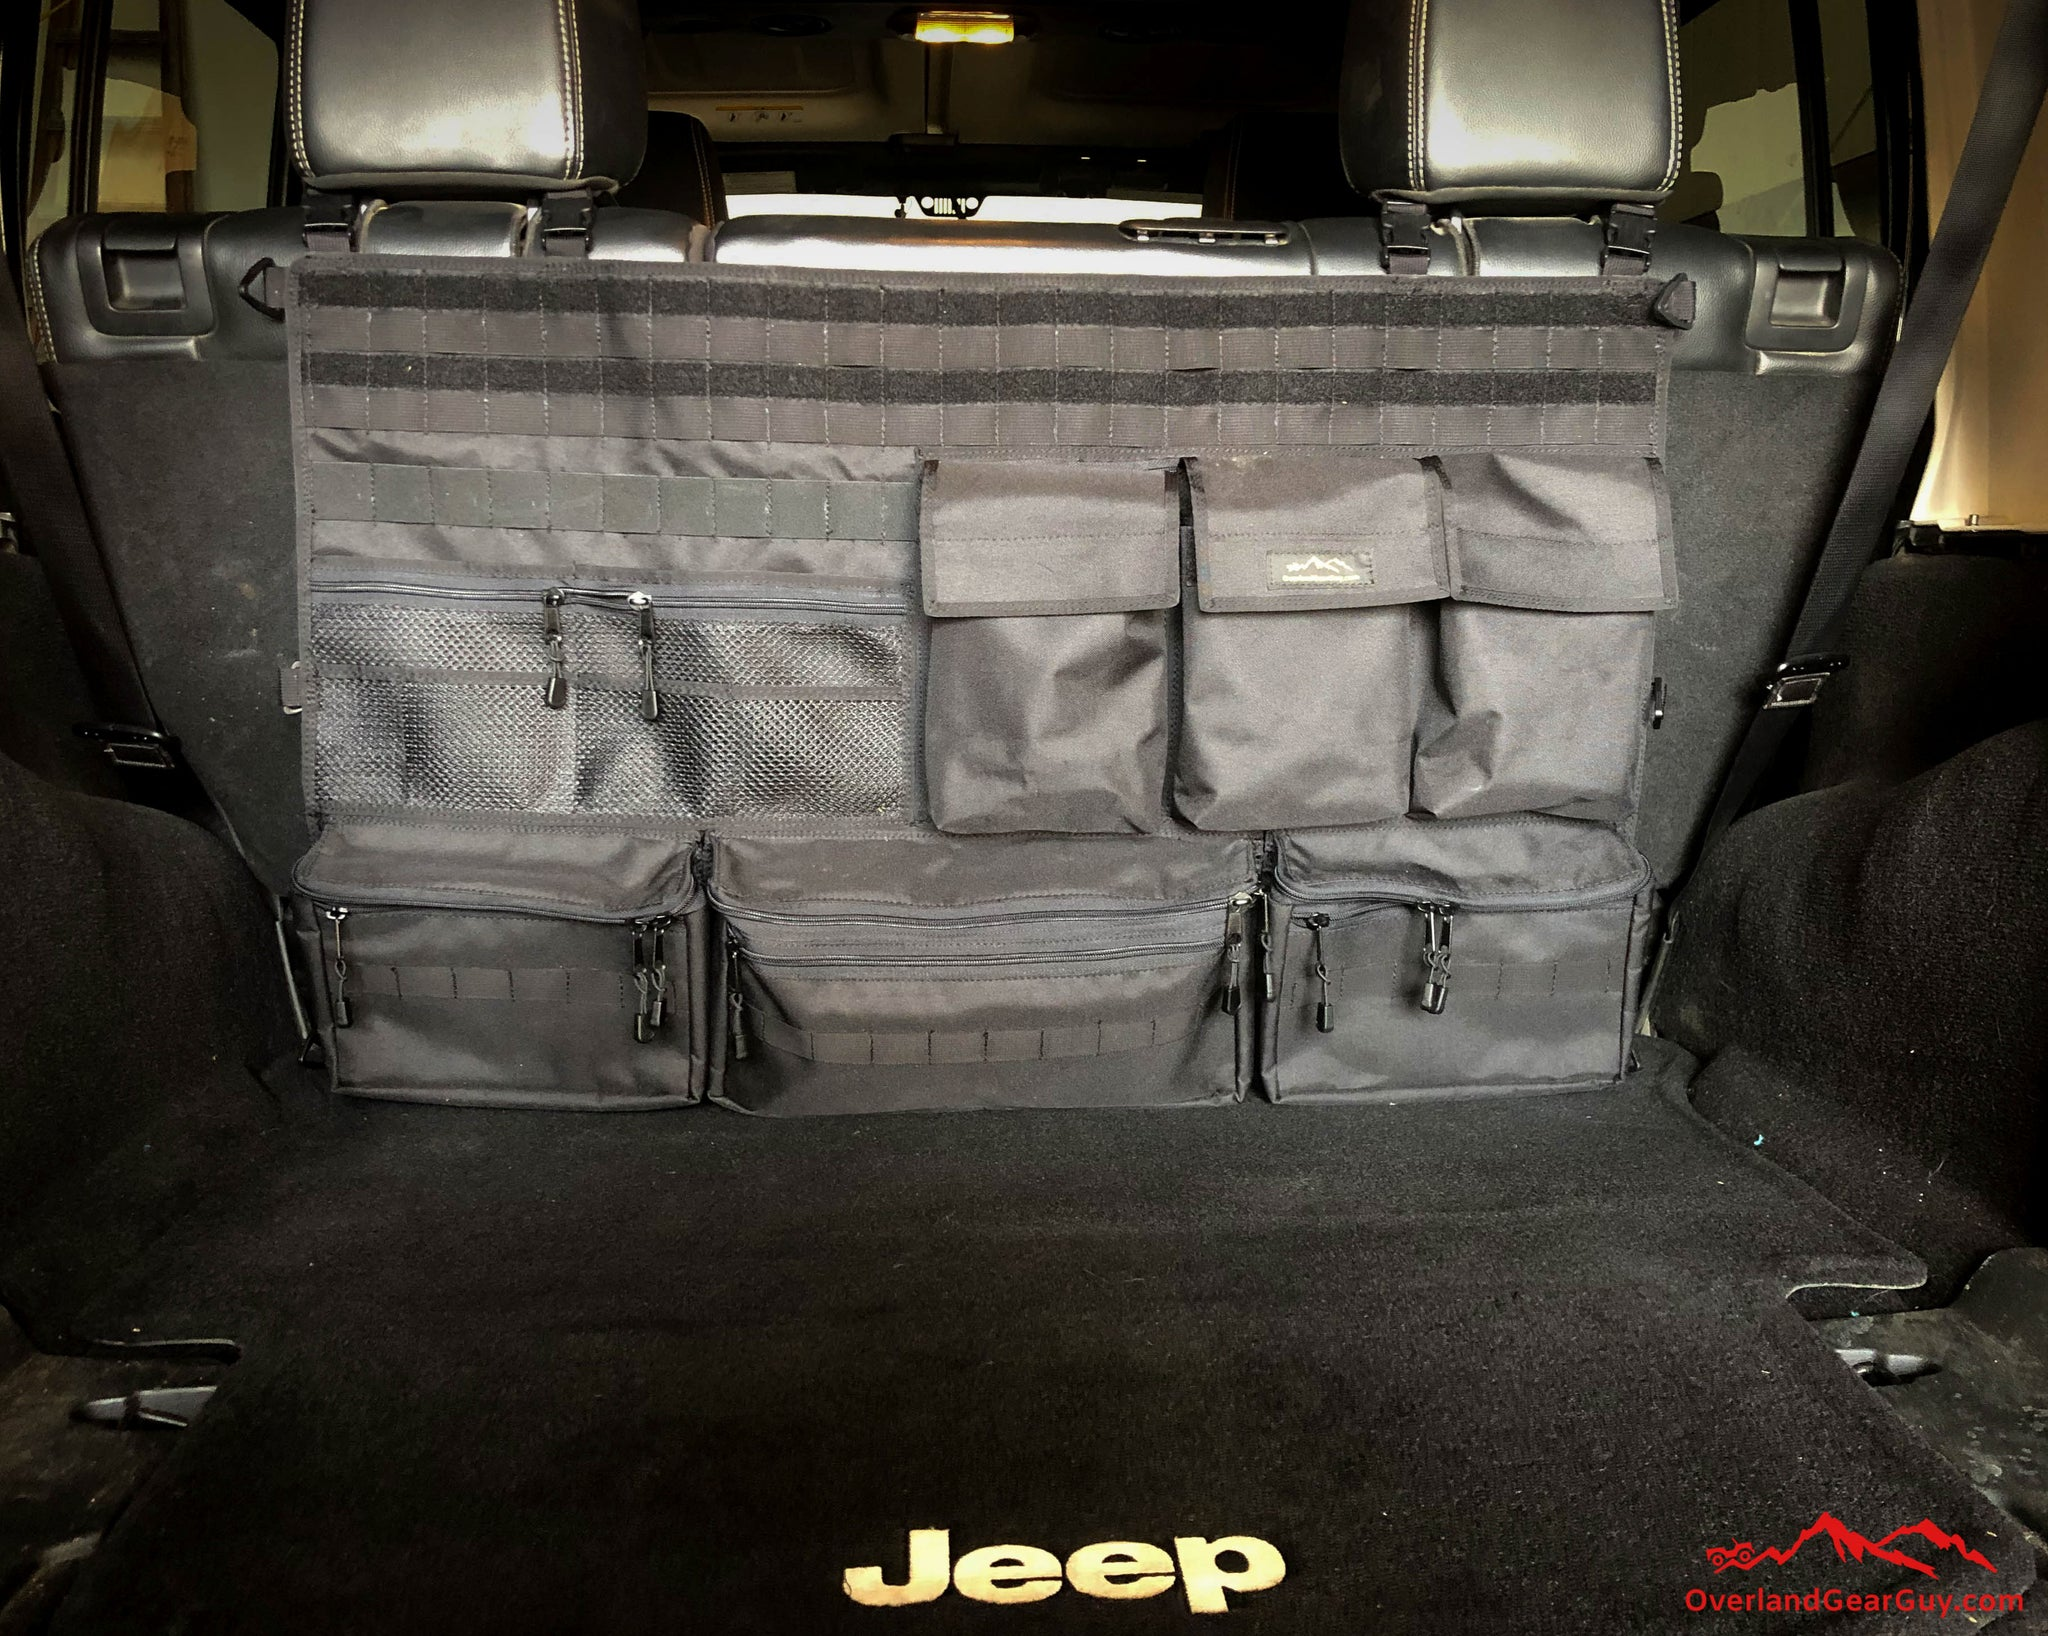 04729106bb Load image into Gallery viewer, Jeep Rear Cargo Area Organizer ...